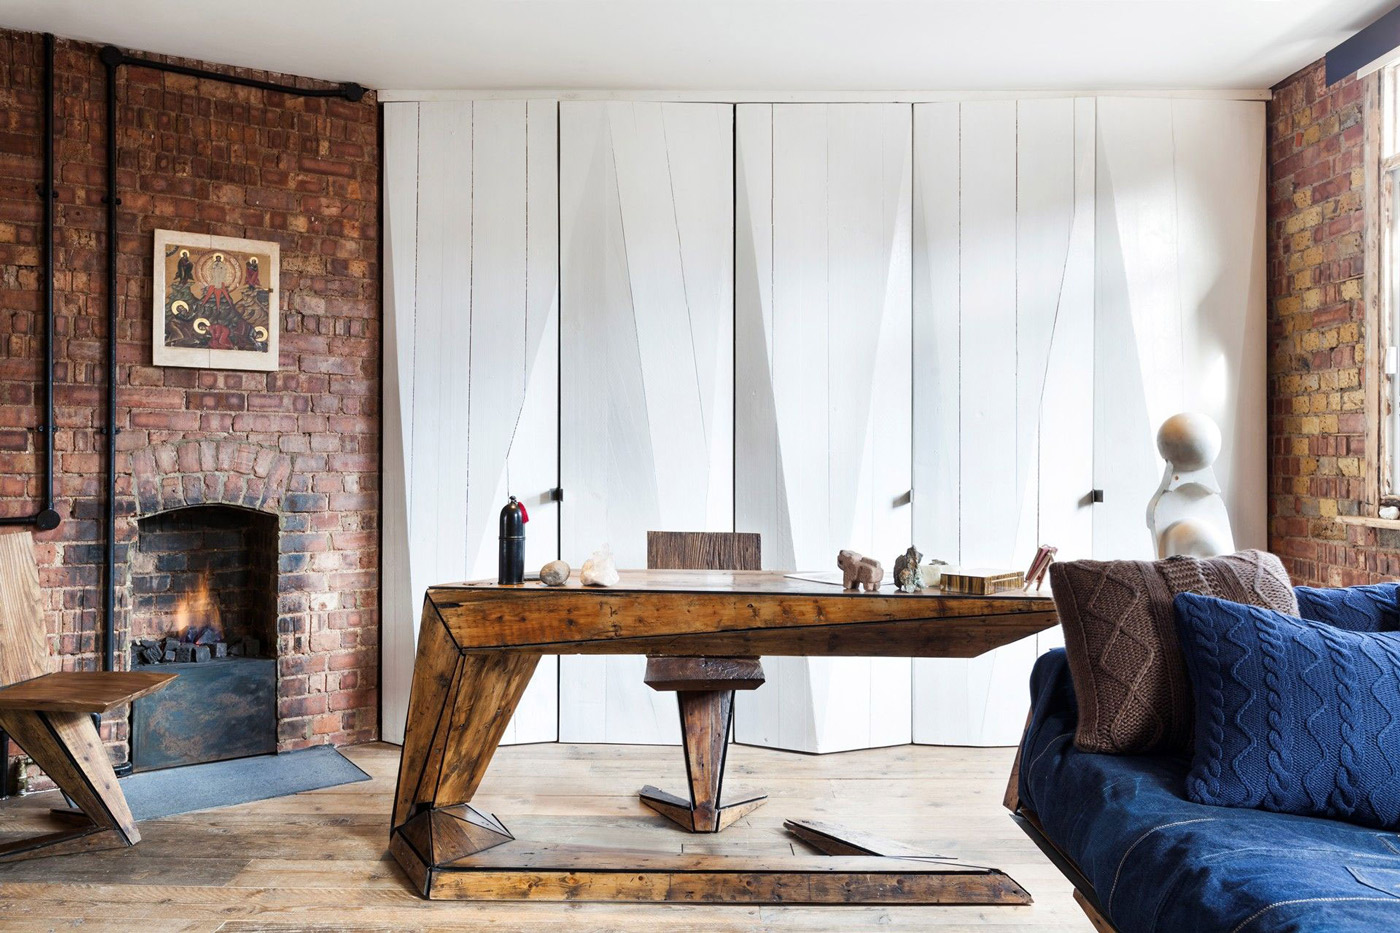 Archer Street Apartment in London England